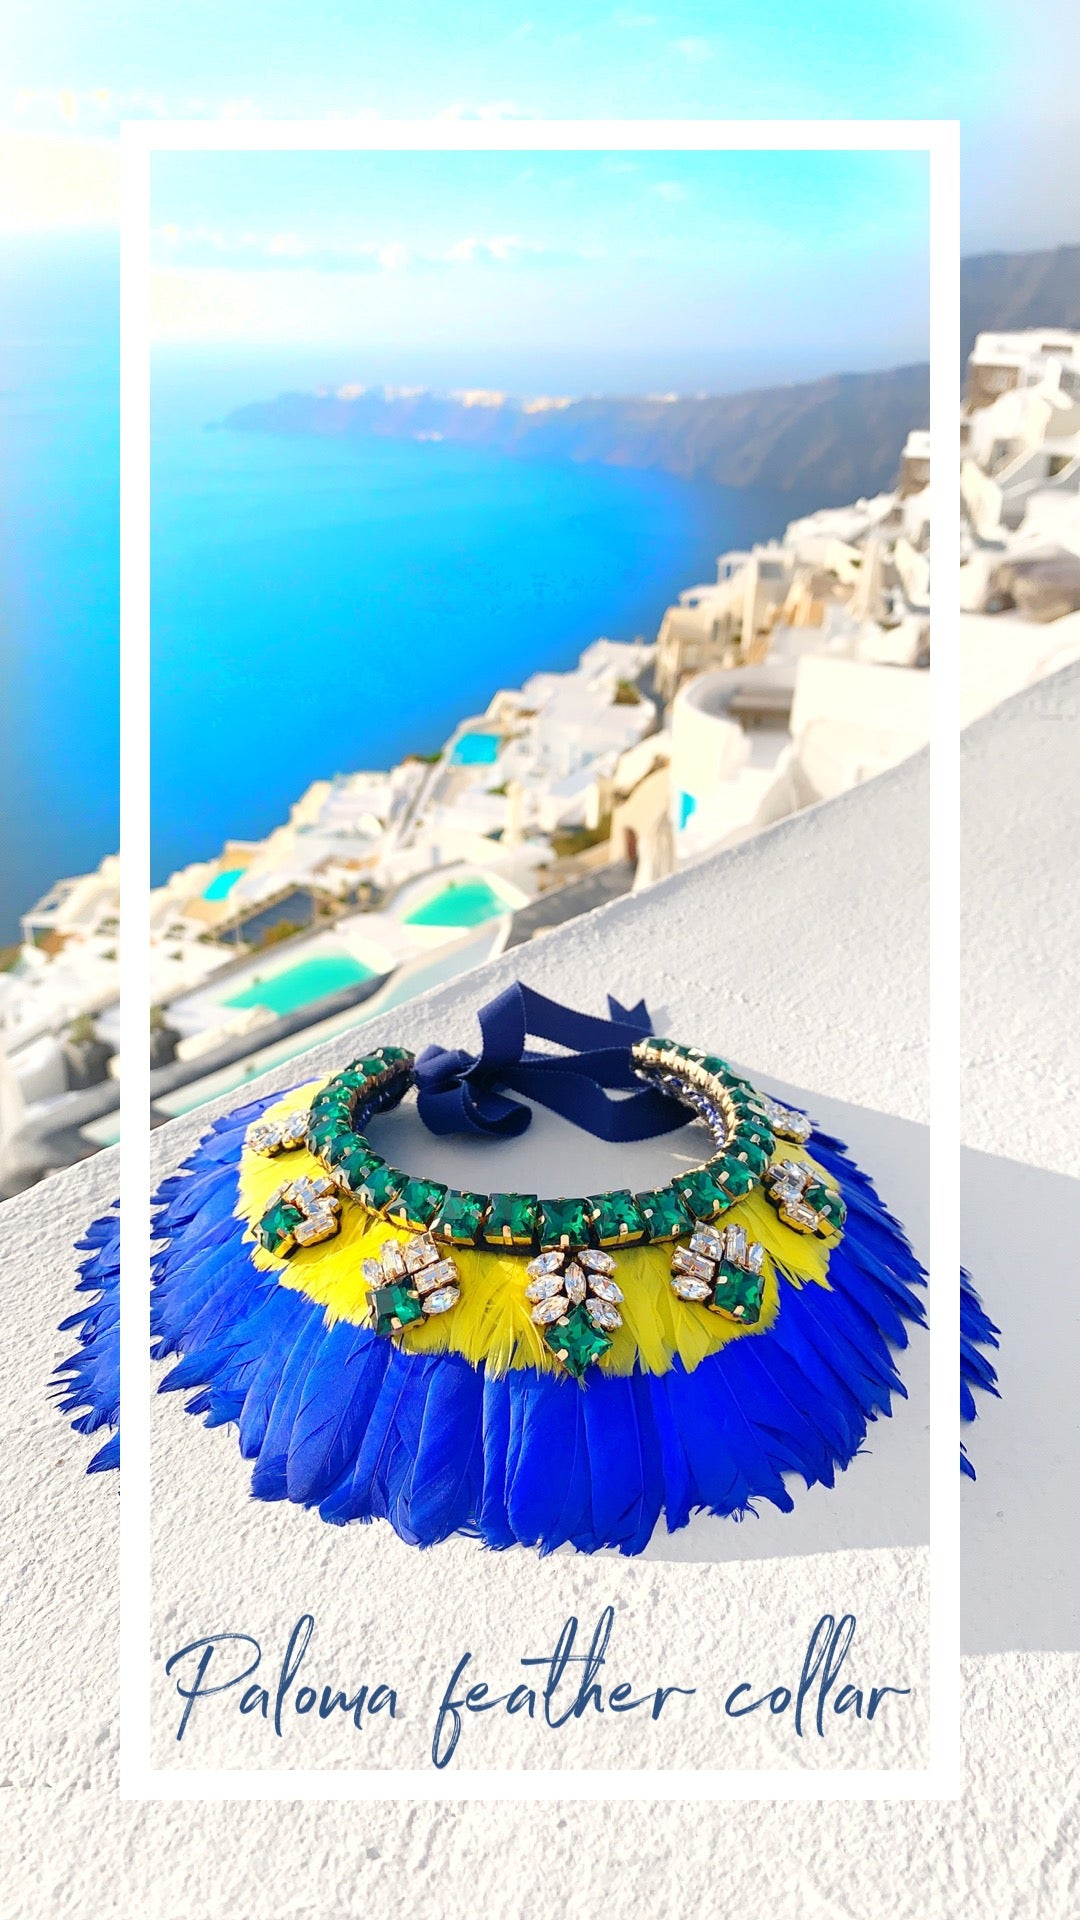 Jolita Jewellery's Paloma crystal and feather collar overlooking Santorini caldera